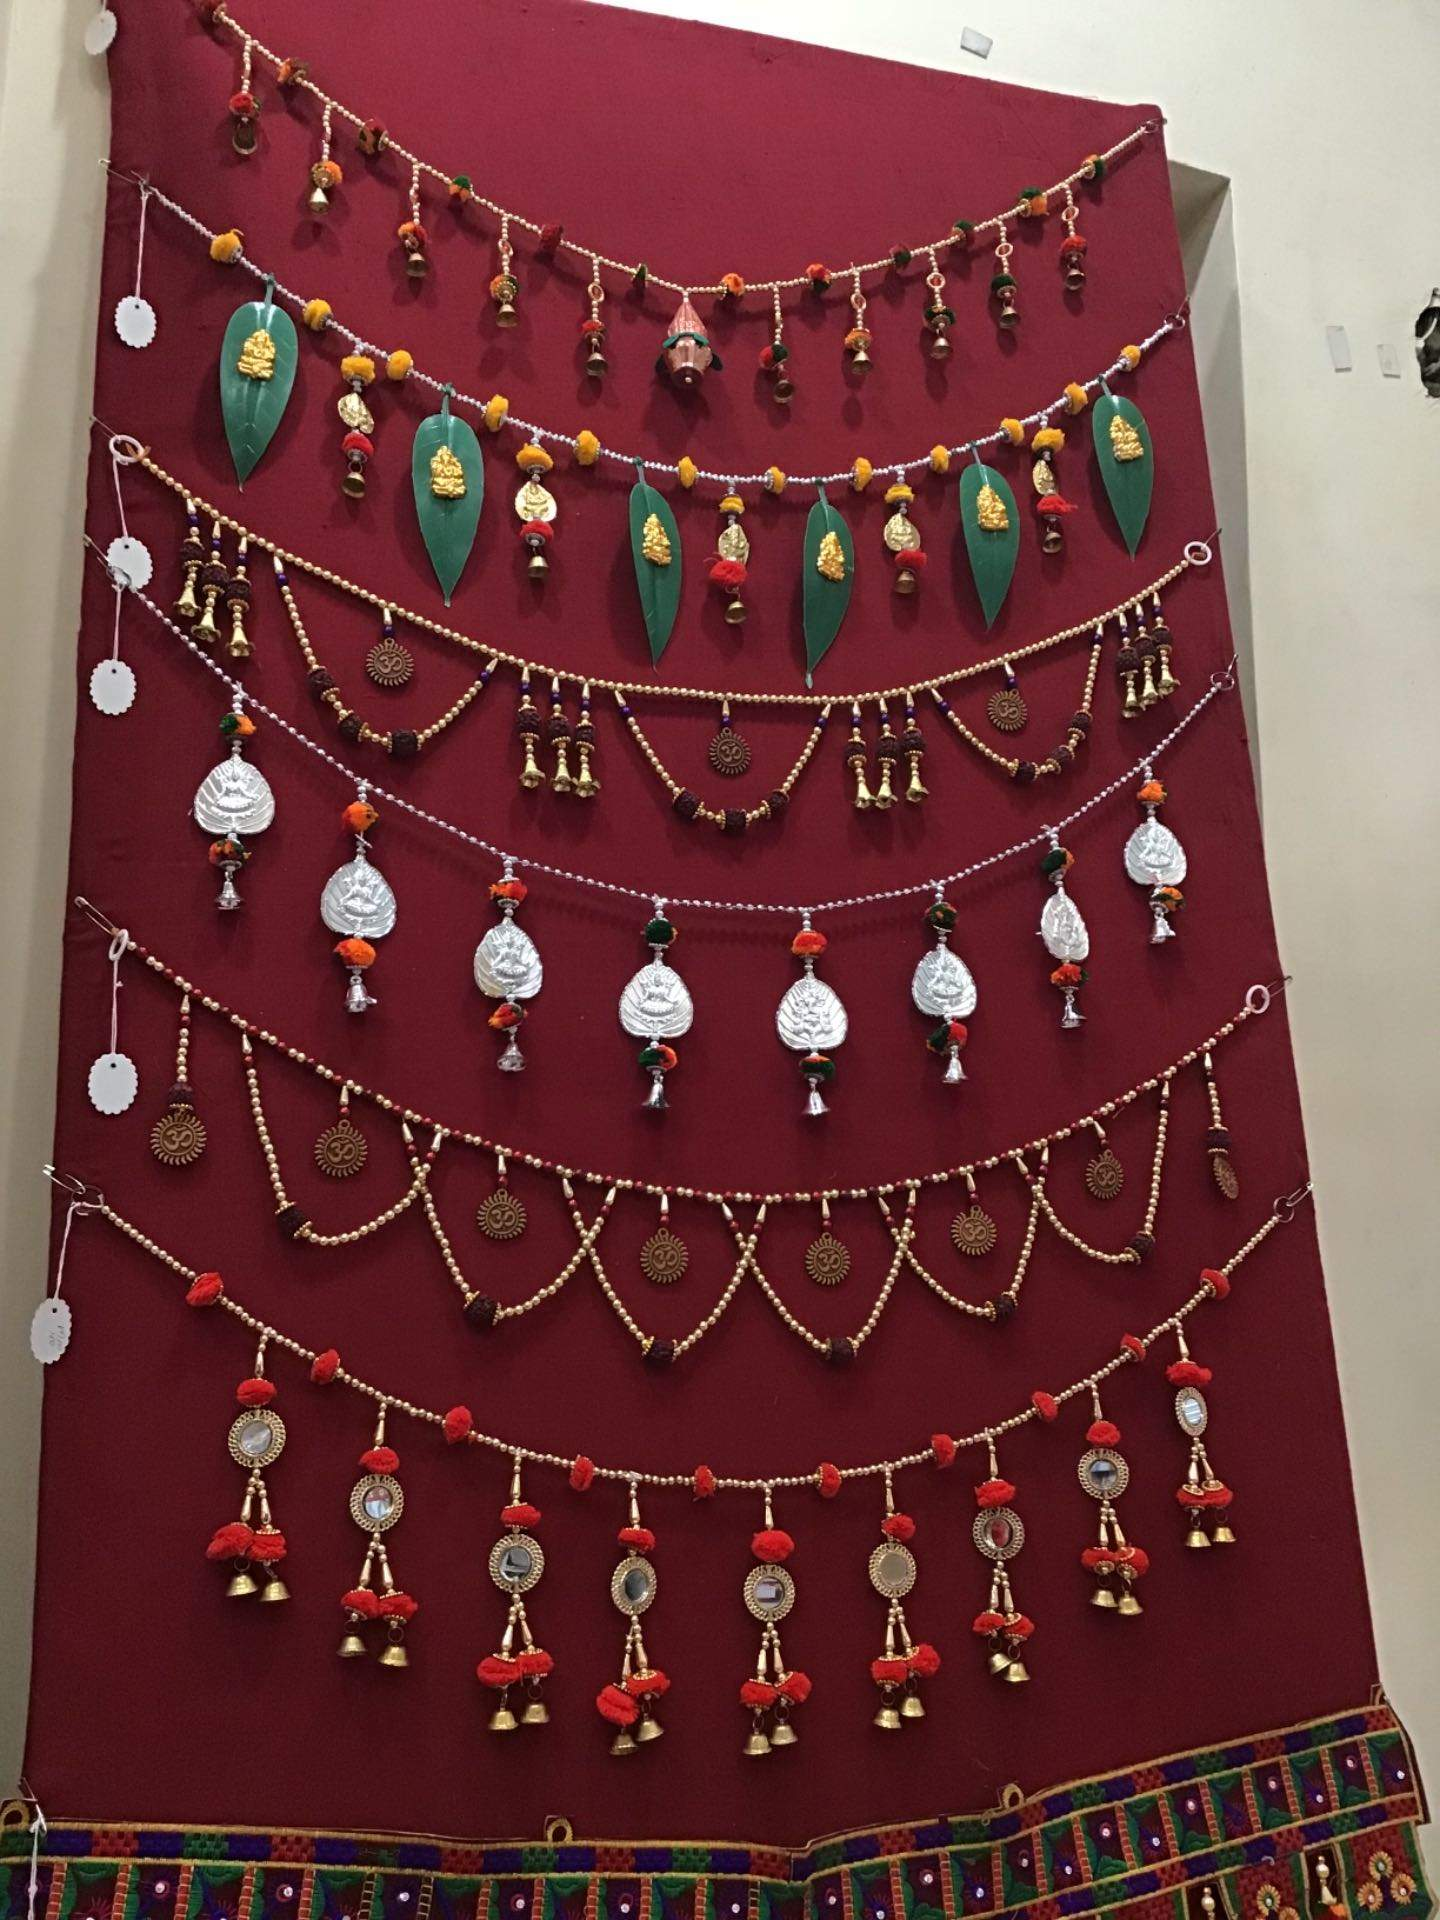 Top 100 Handicraft Item Dealers In Jodhpur Best Handicraft Item